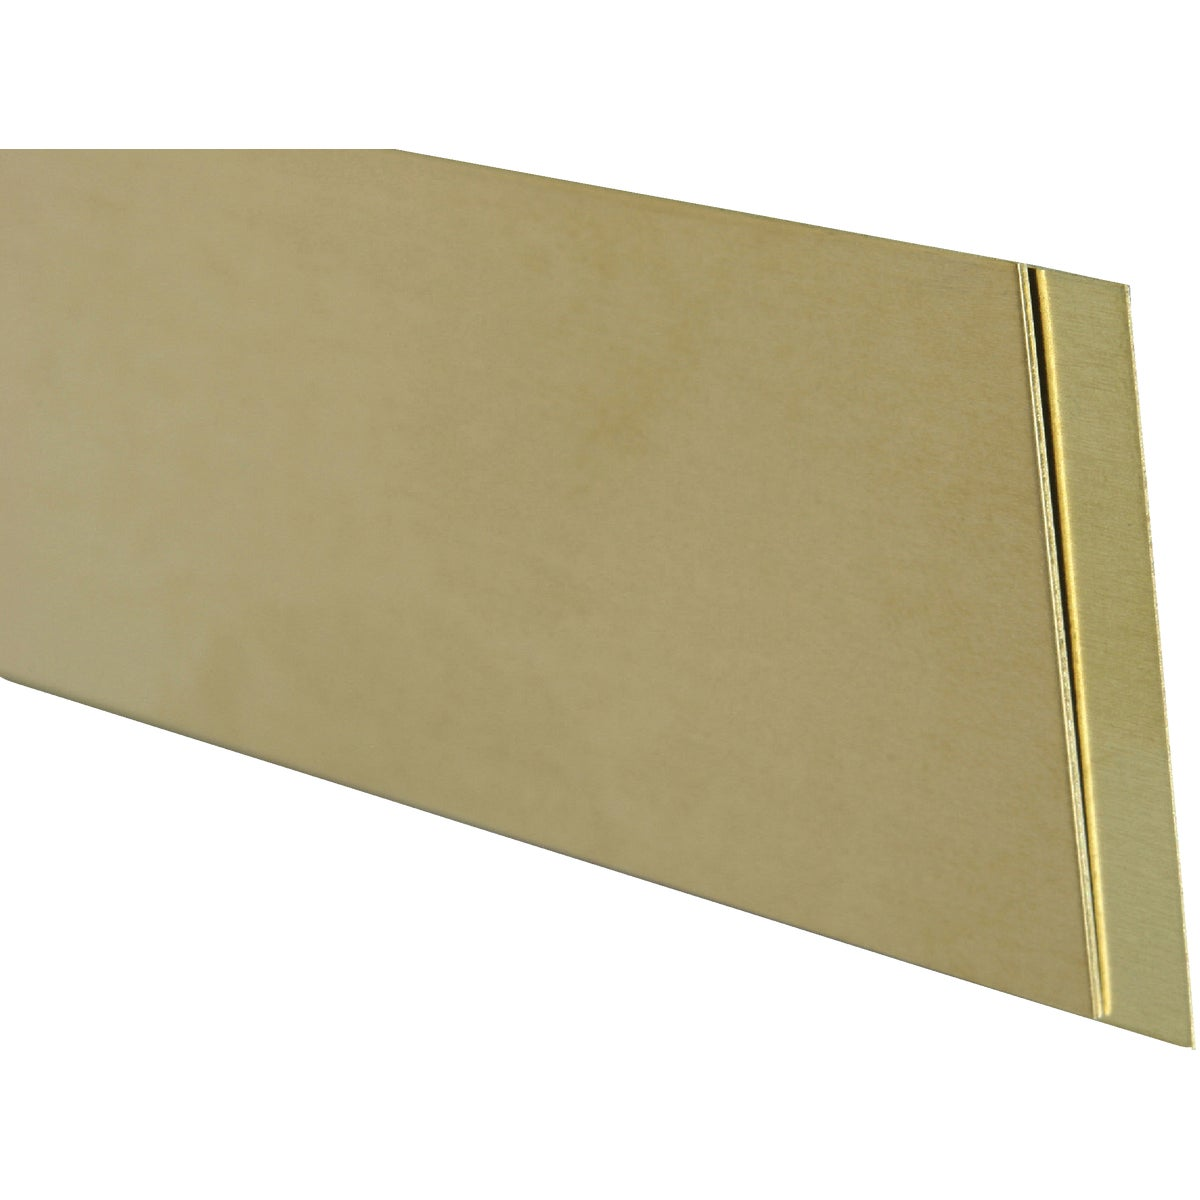 .093X1X12 BRASS STRIP - 8228 by K&s Precision Metals